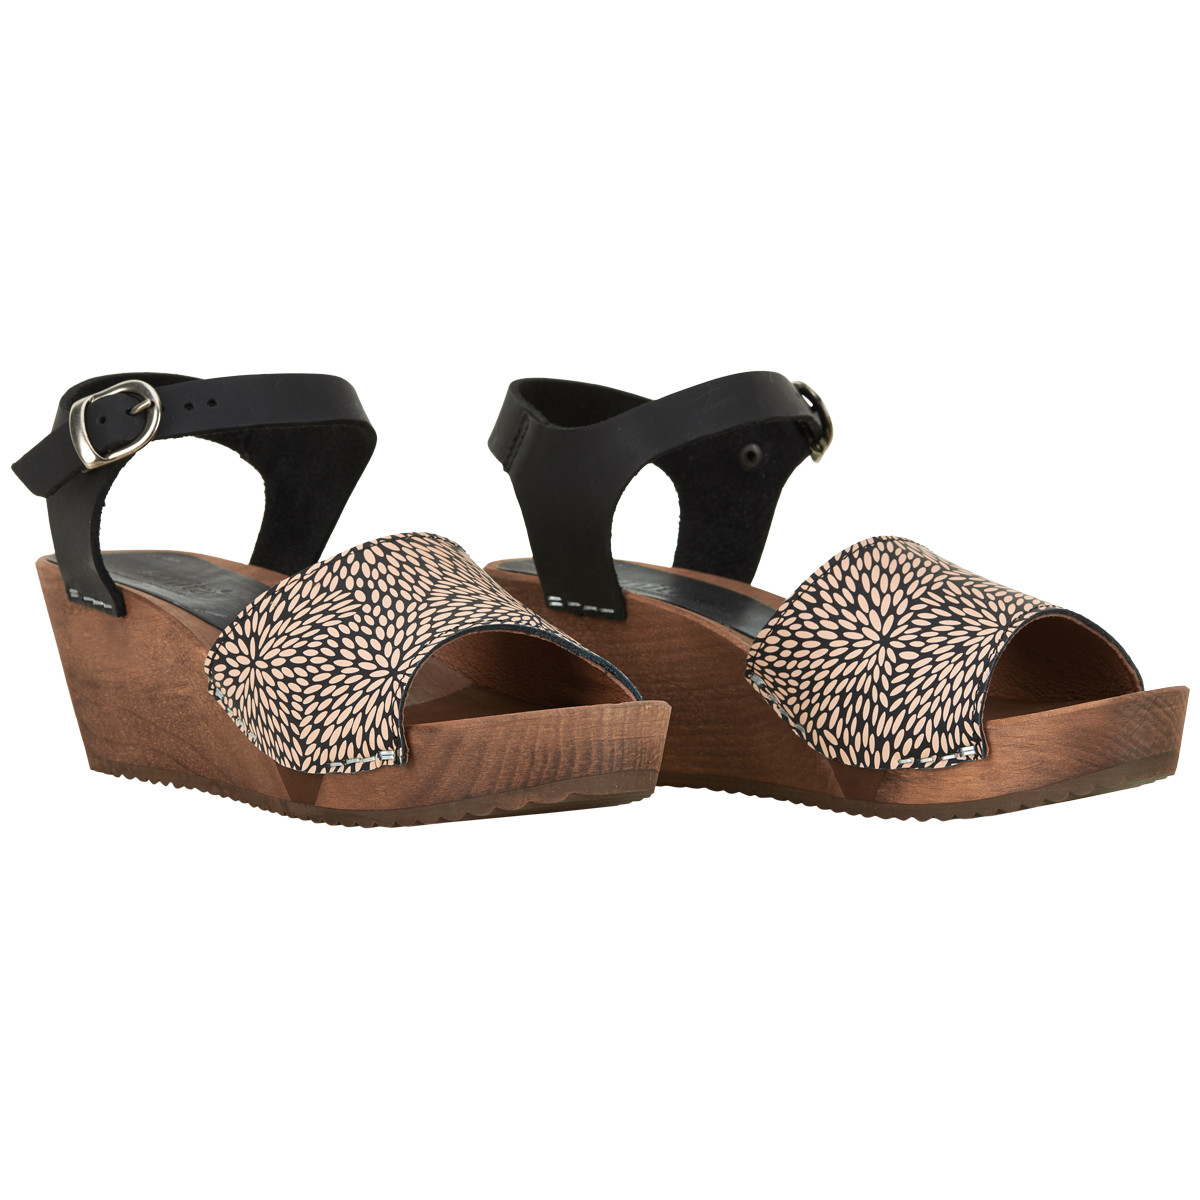 SANITA OTHENIA SANDAL 459620 2